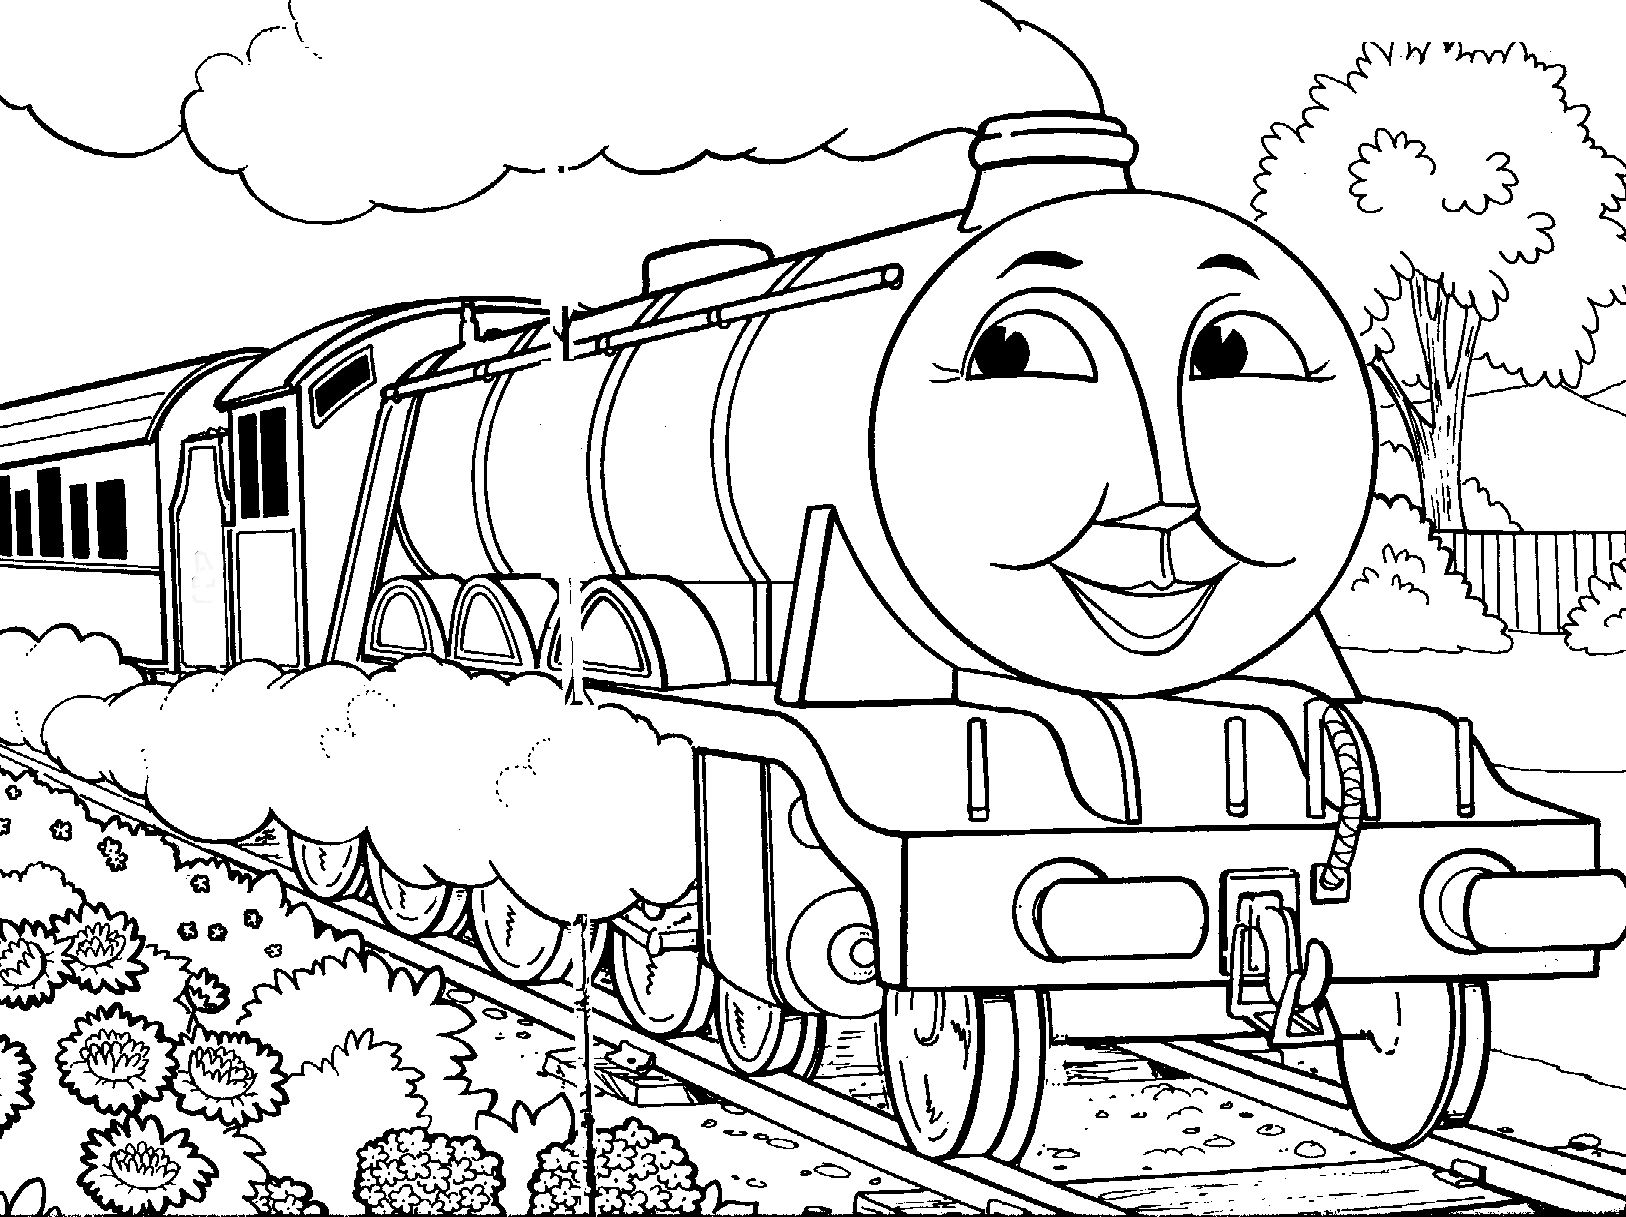 emily the tank engine coloring pages free coloring pages printable pictures to color kids engine pages coloring emily the tank